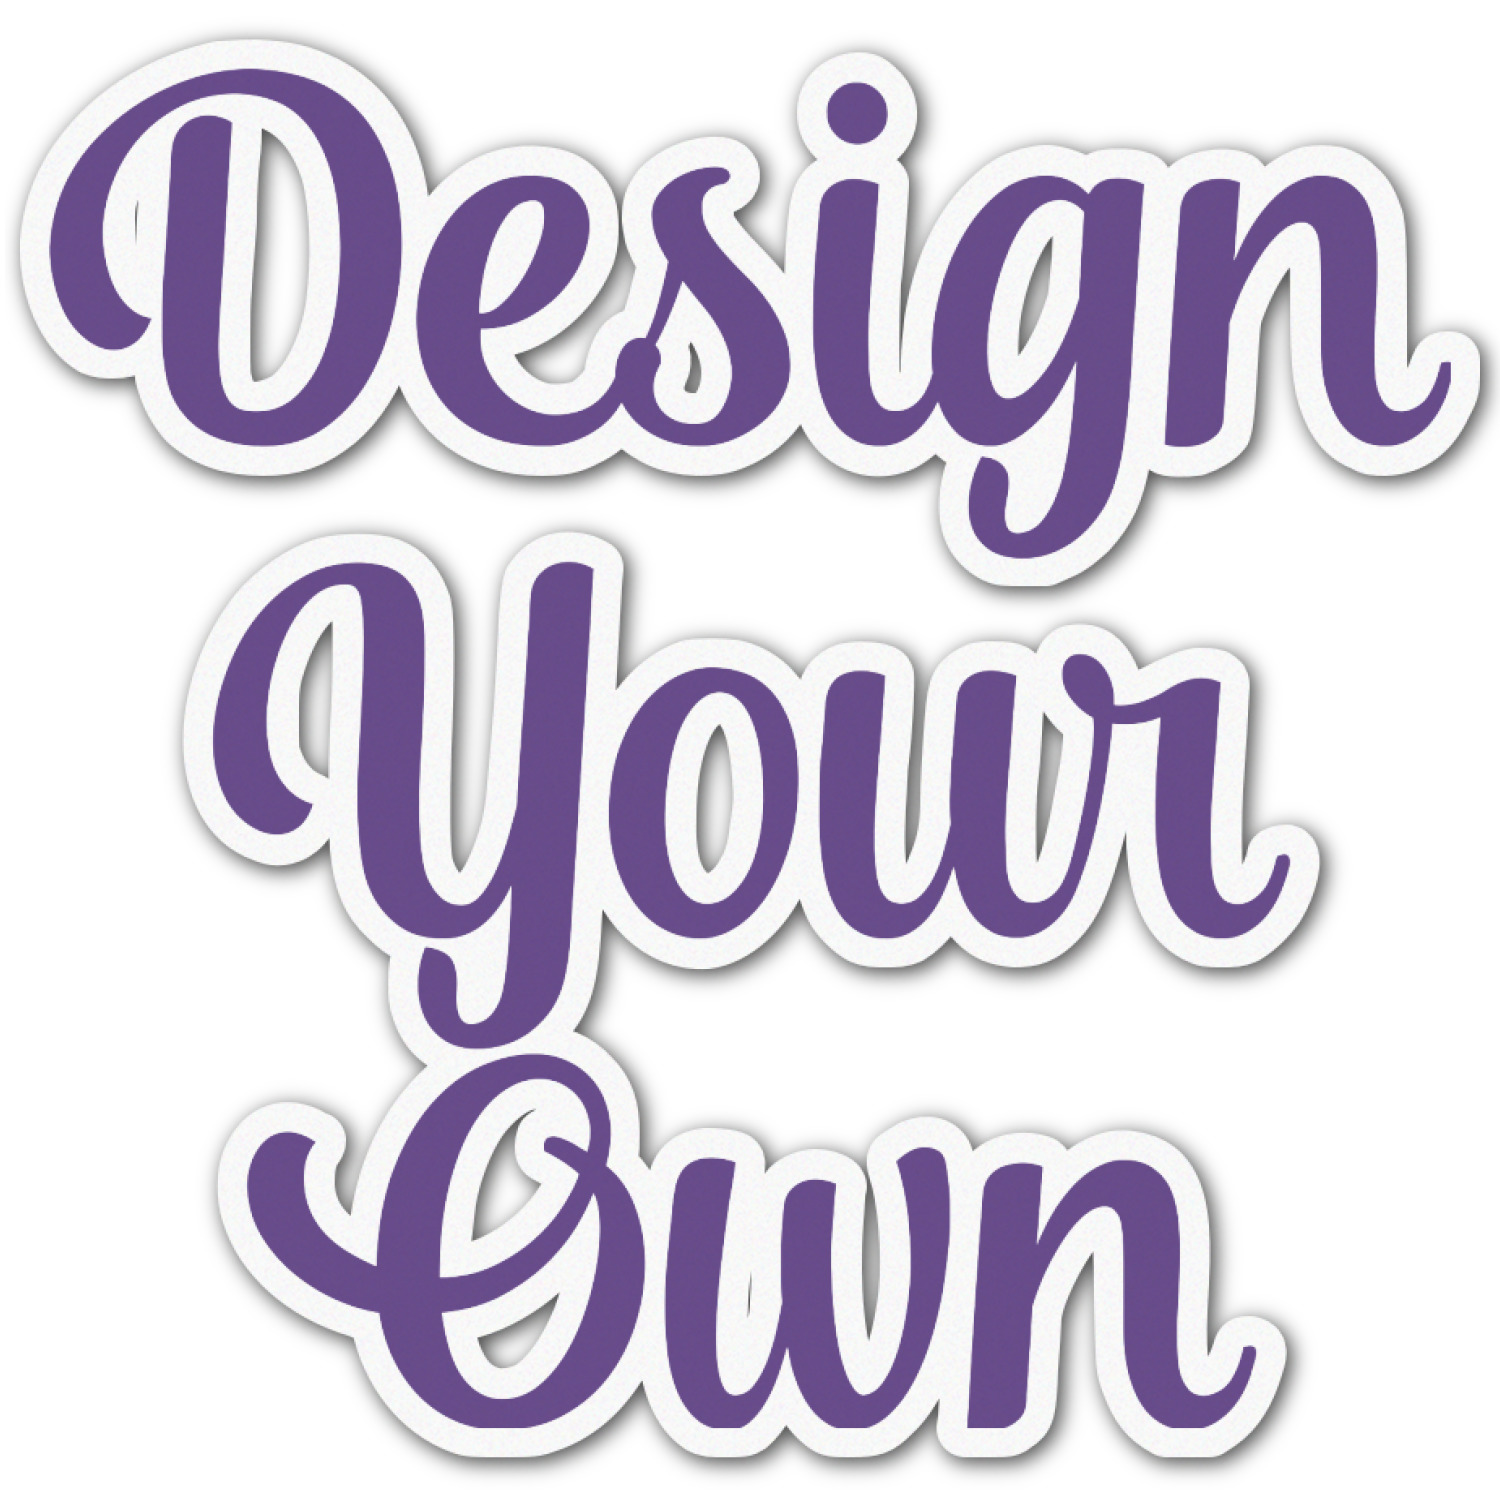 Design Own Wall Decal 28 Images Wall Decal Design Your Own Wall Decal Here Create Your